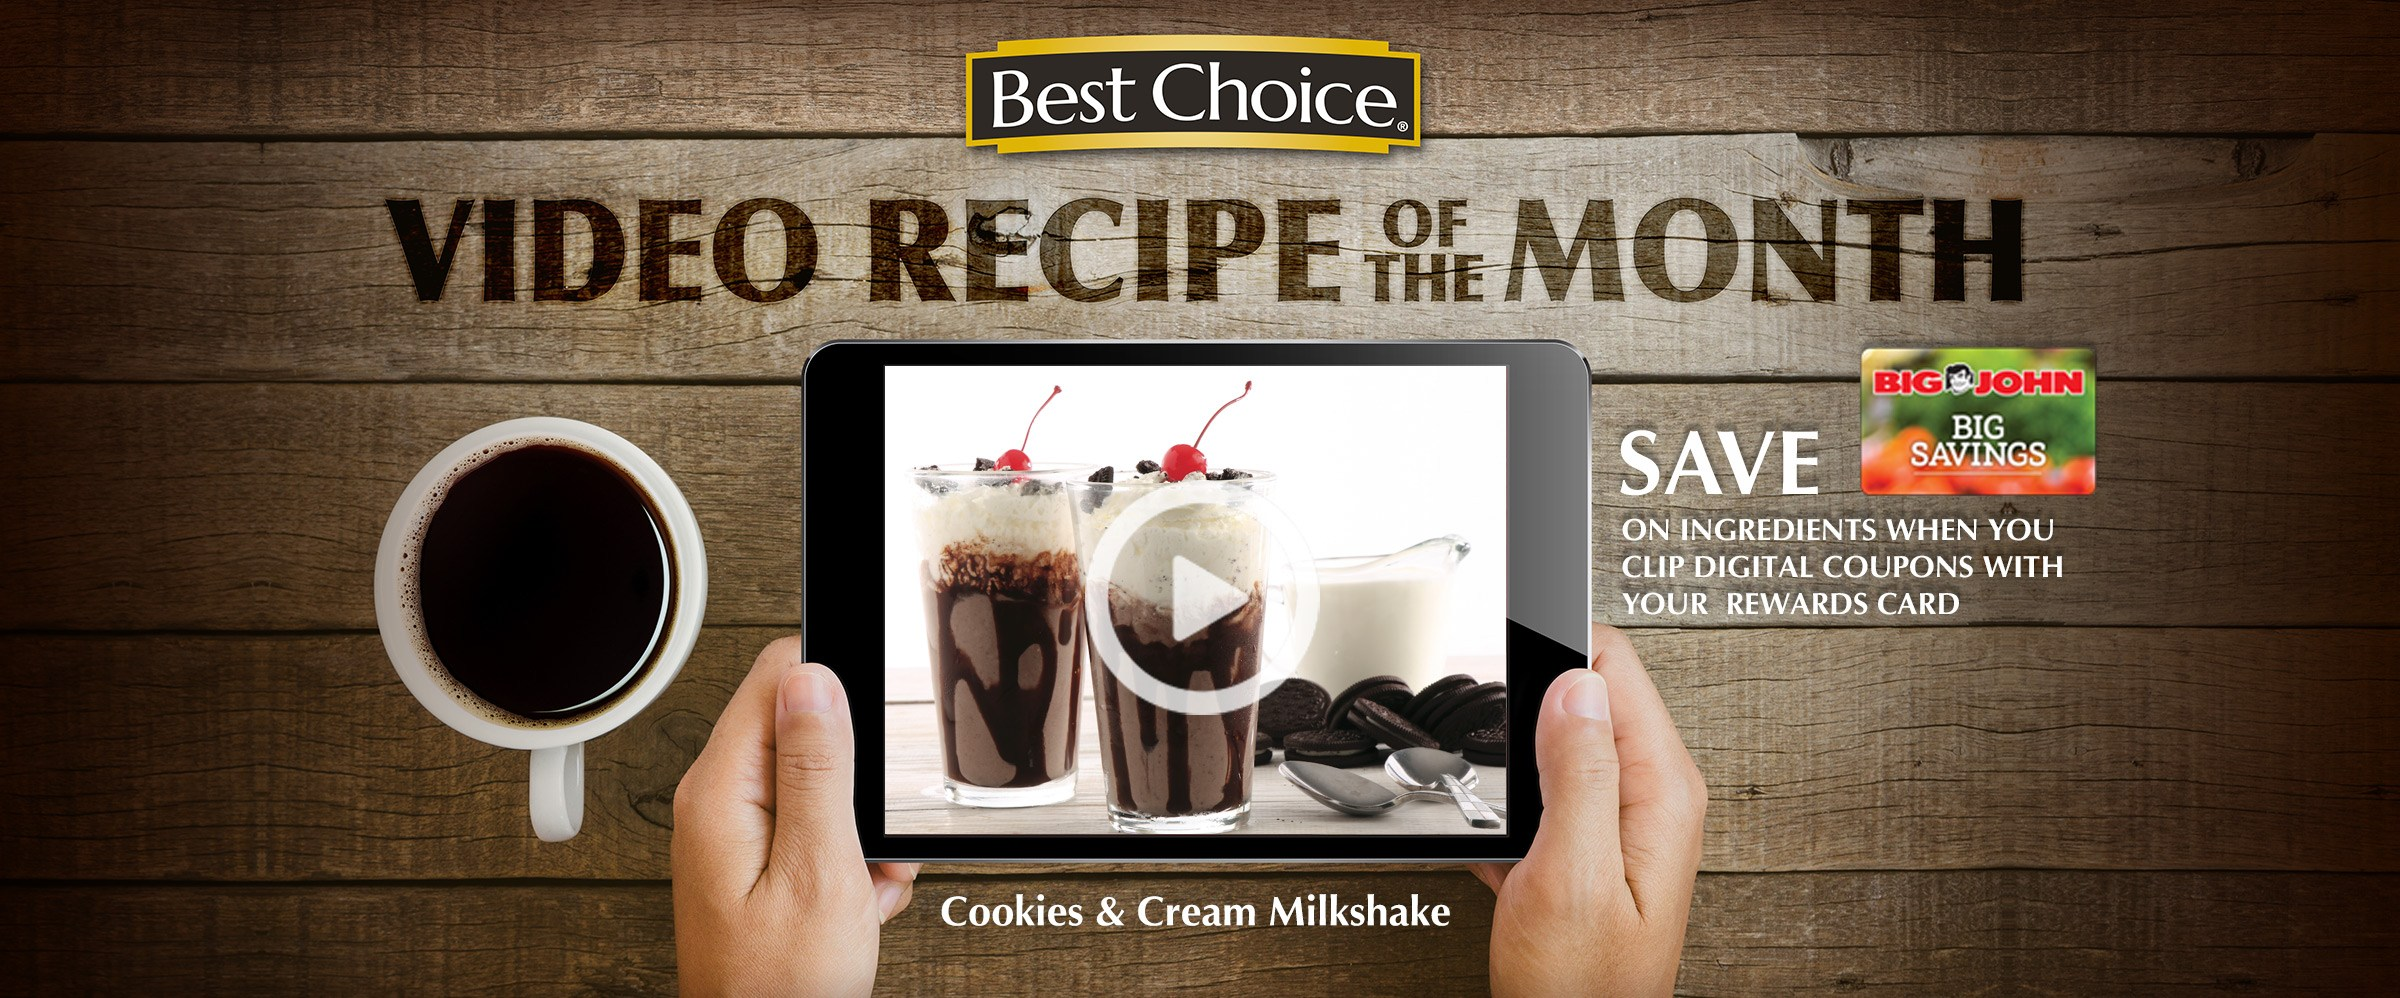 Best Choice Video of the Month: Cookies & Cream Milkshake